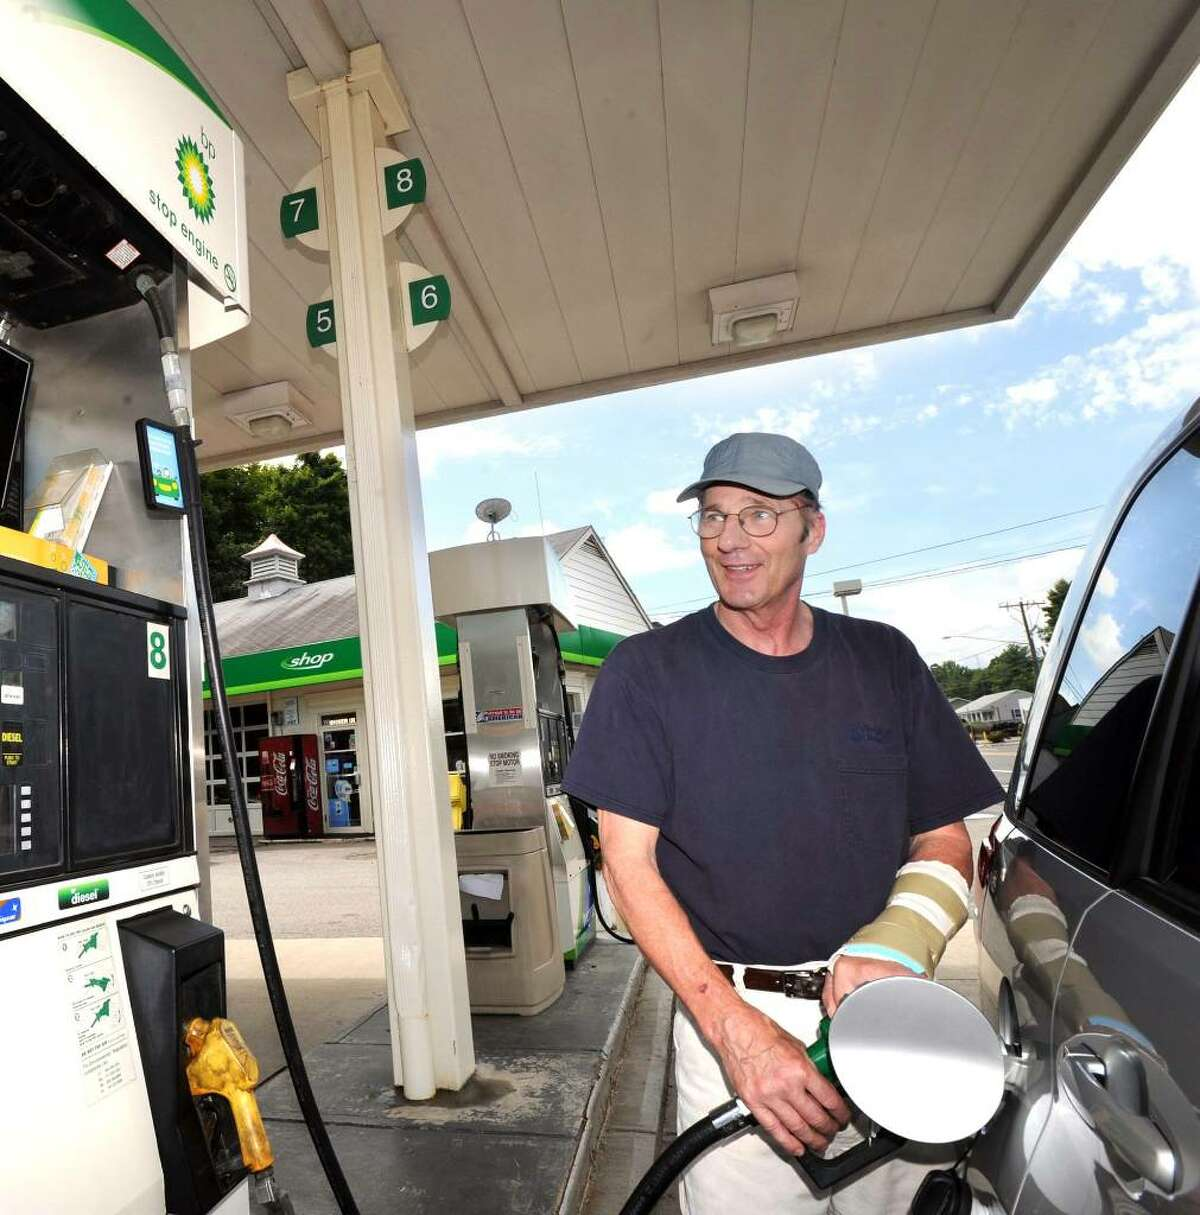 Stephen Sprindis of Brookfield pumps gas at the BP station at the Four Corners in Brookfield Sunday, July 25, 2010.